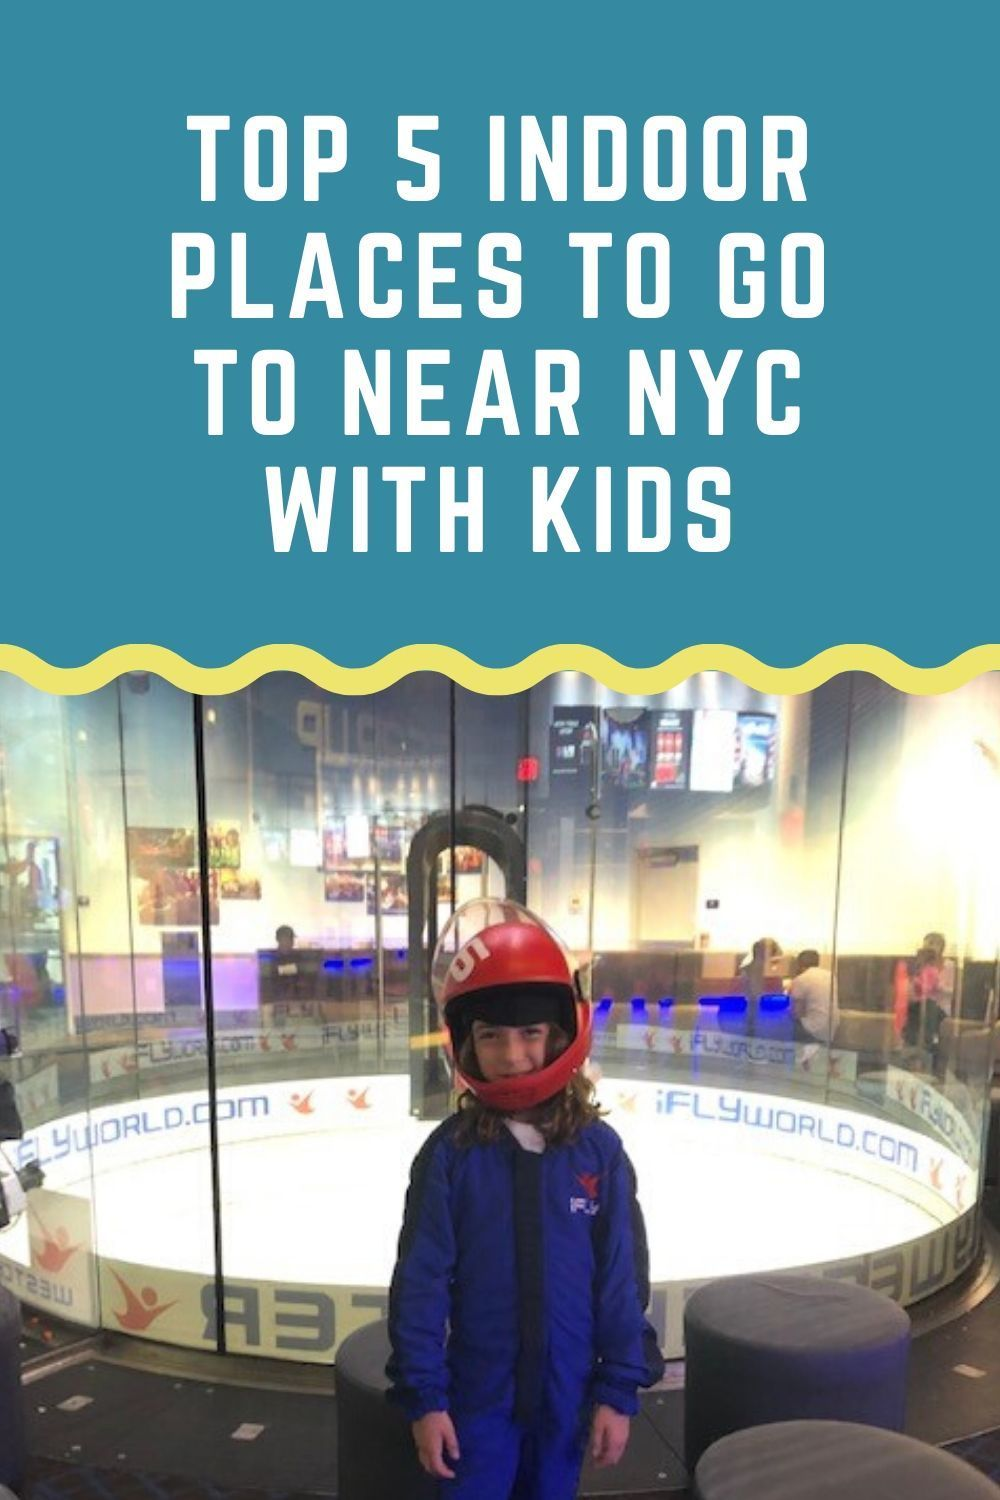 Top 5 Indoor Places To Take Your Kids To Near Nyc In 2020 Indoor Places Nyc With Kids Nyc